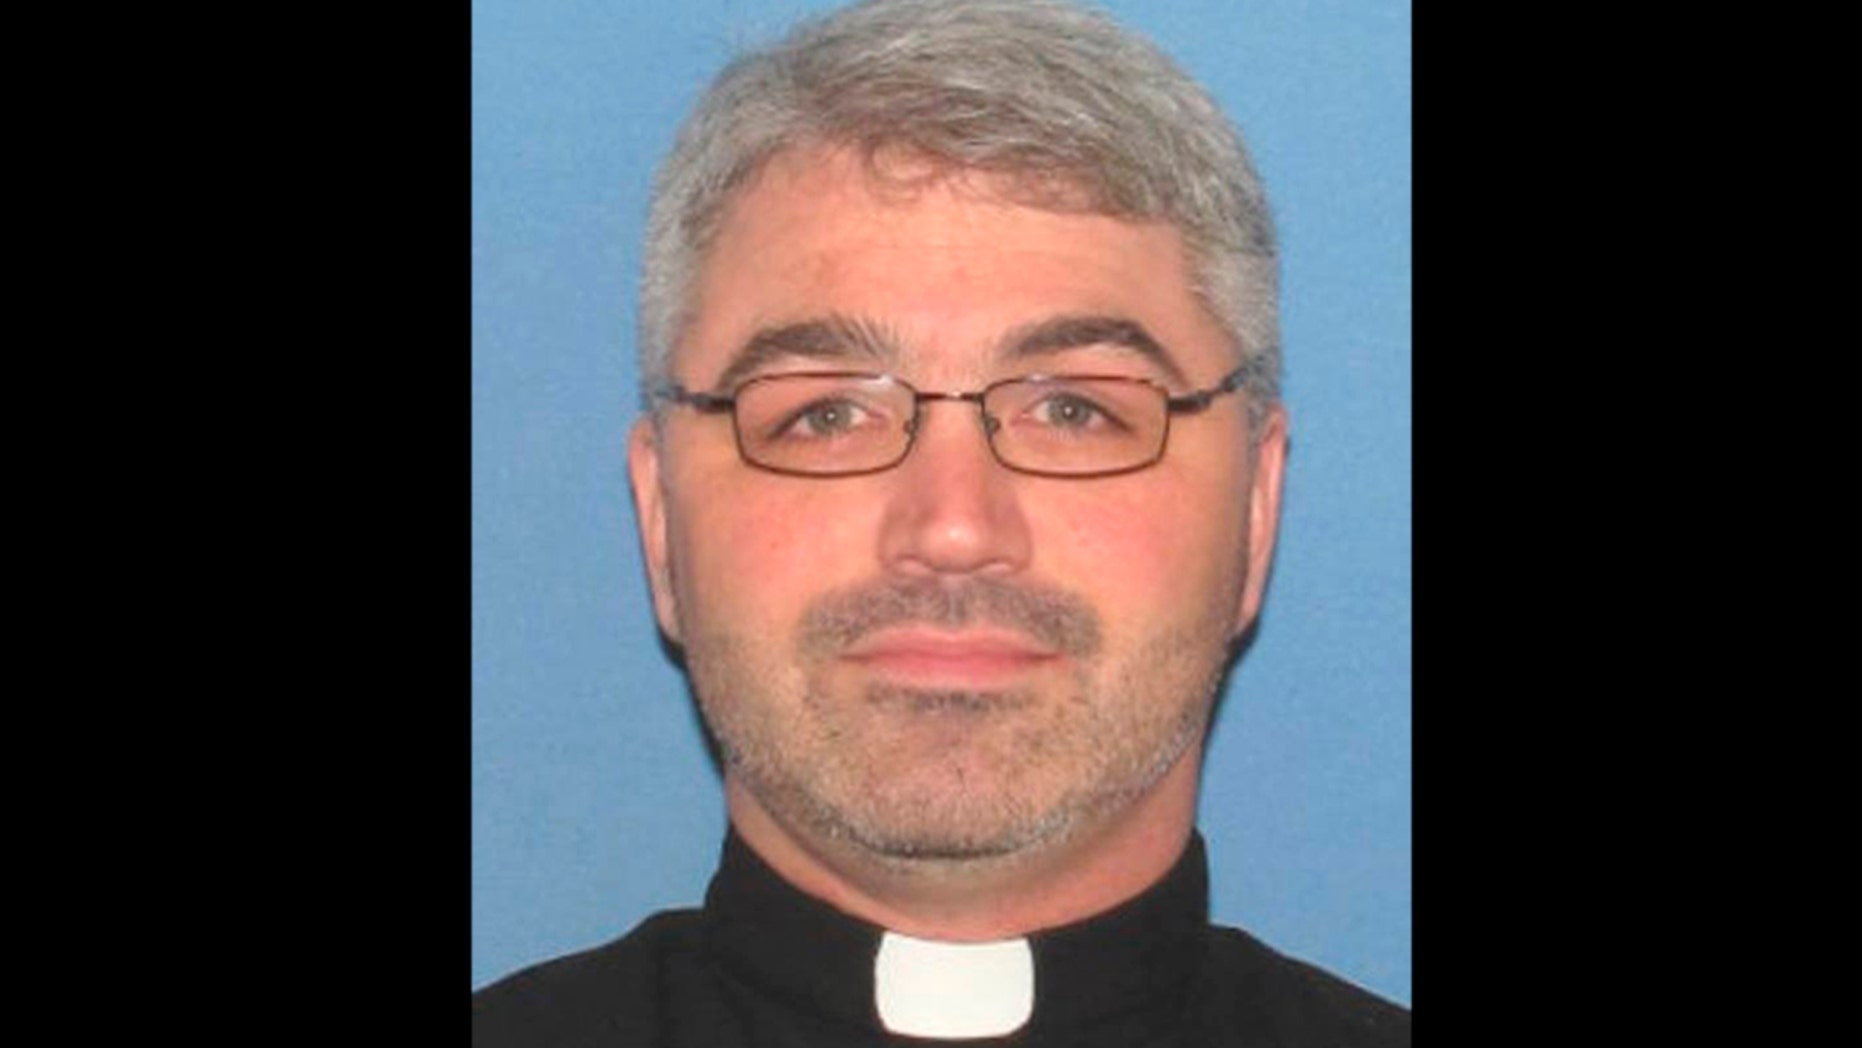 Father Henry Christopher Foxhoven has been charged with eight counts of sexual battery after allegedly impregnating a 17-year-old girl.